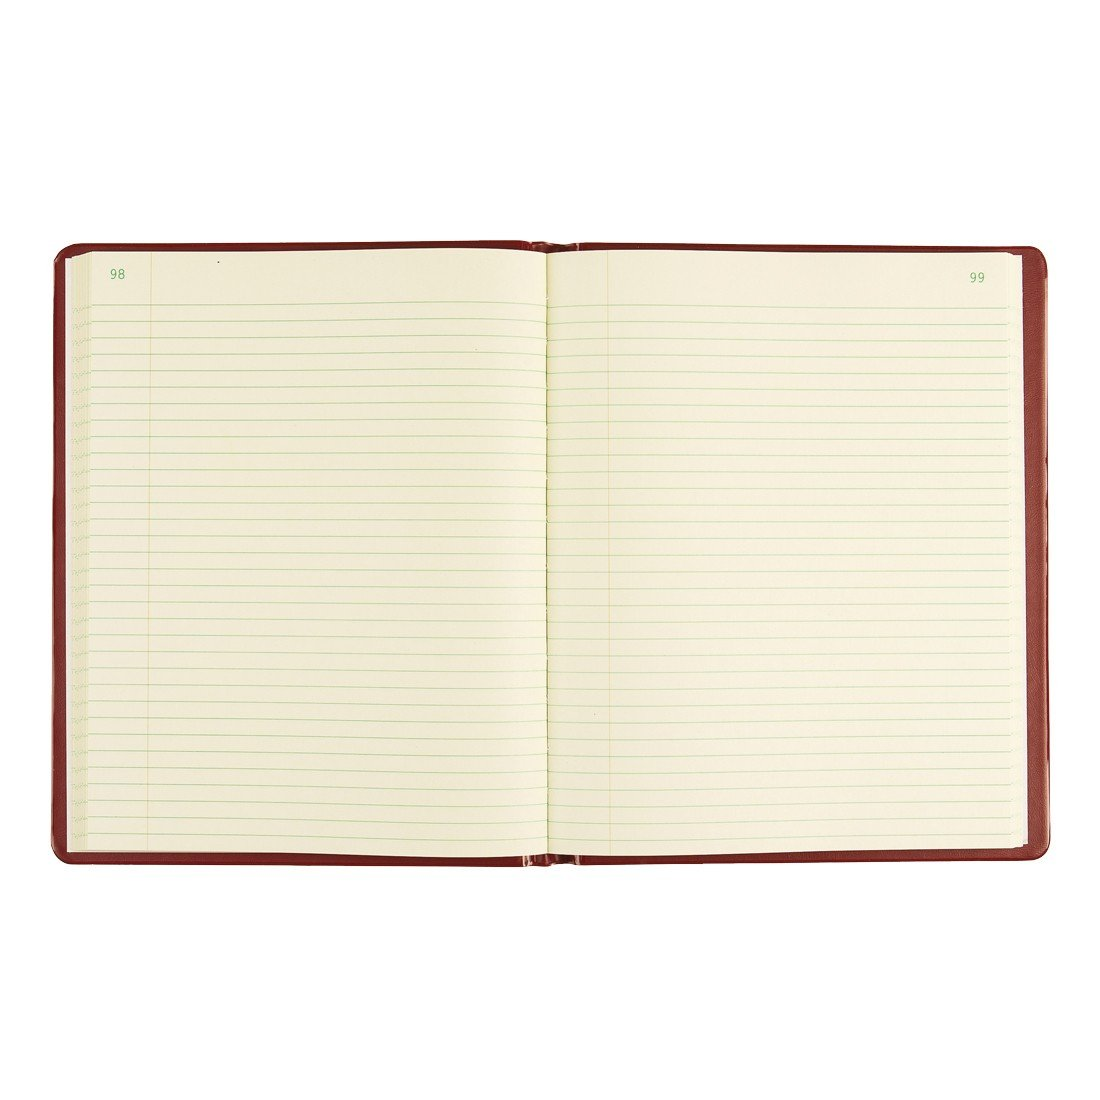 National Red Vinyl Series Record Book, 300 Pages, 7-3/4 x 10 Sheets, 8 1/4 x 10 1/2 Book (57231)